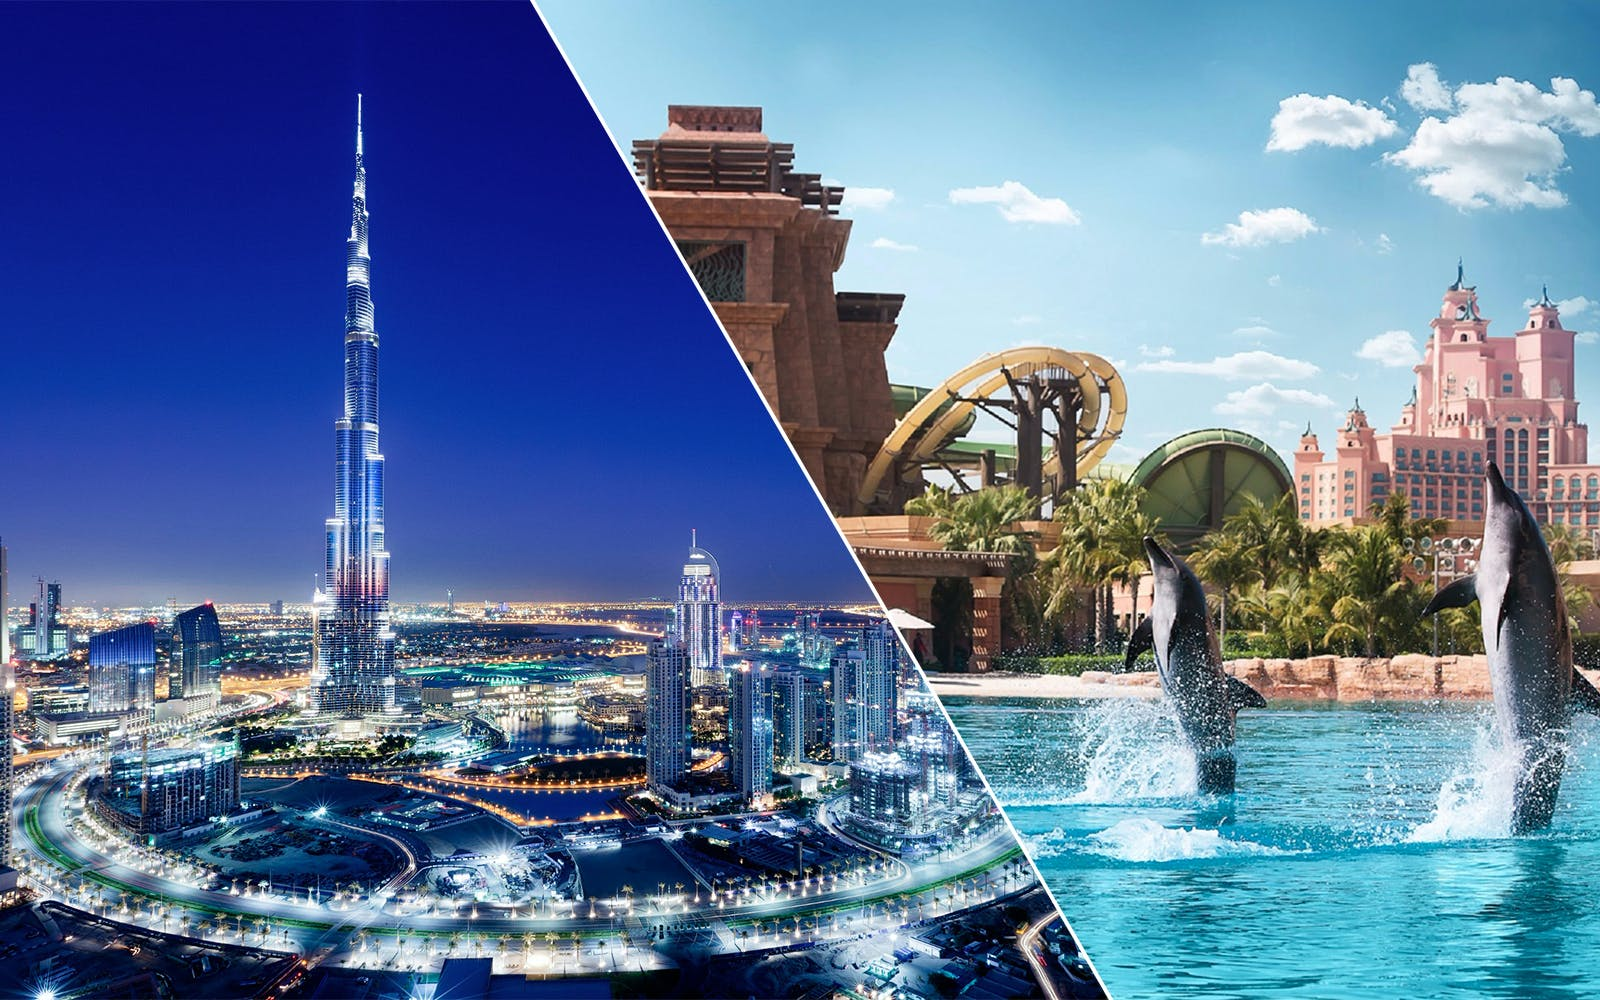 aquaventure waterpark & dubai city tour combo-1